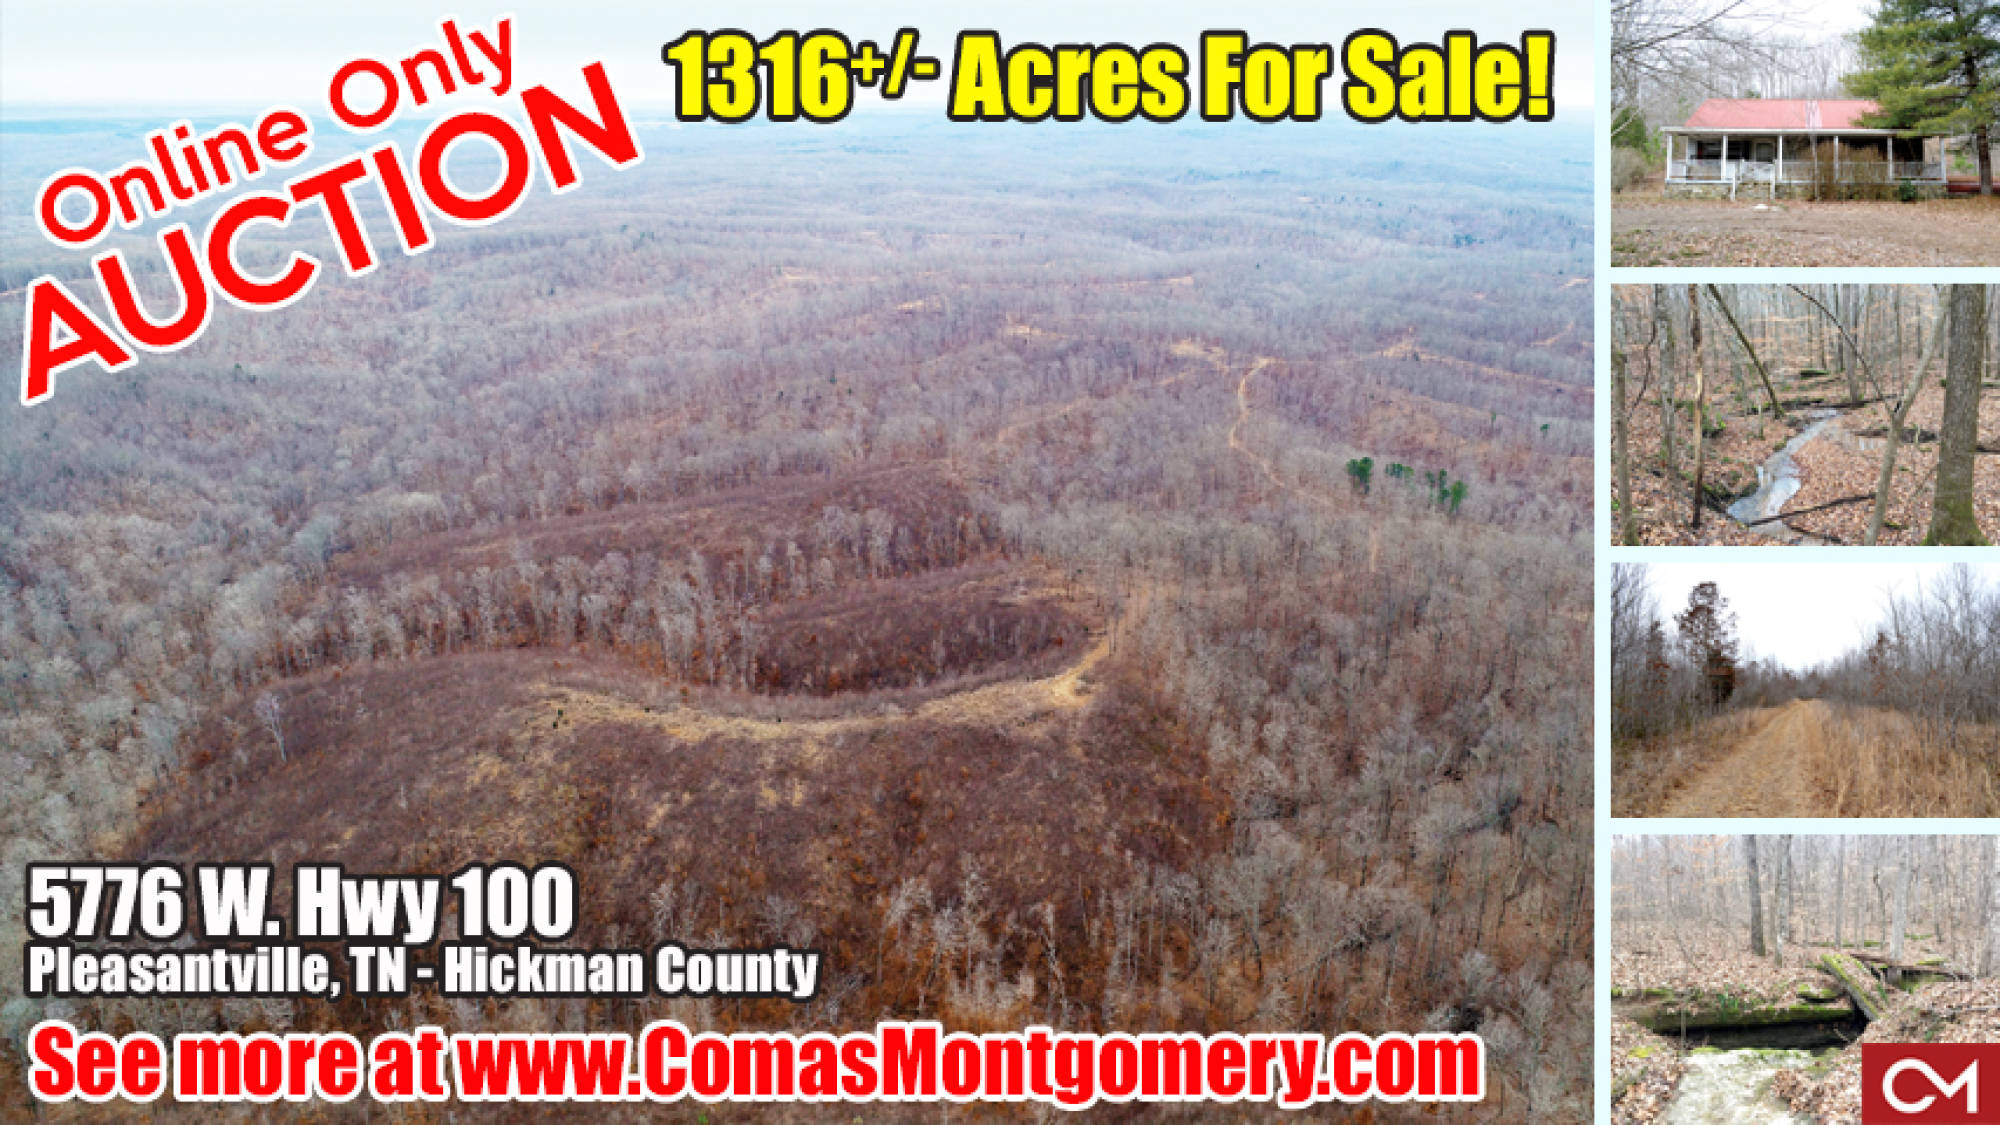 1318, Acres, For Sale, Land, Hunting, Horse, Equestrian, Farm, Recreation, Cabin, Hunt, Investment, Hickman, County, Pleasantville, Tennessee, Comas, Montgomery